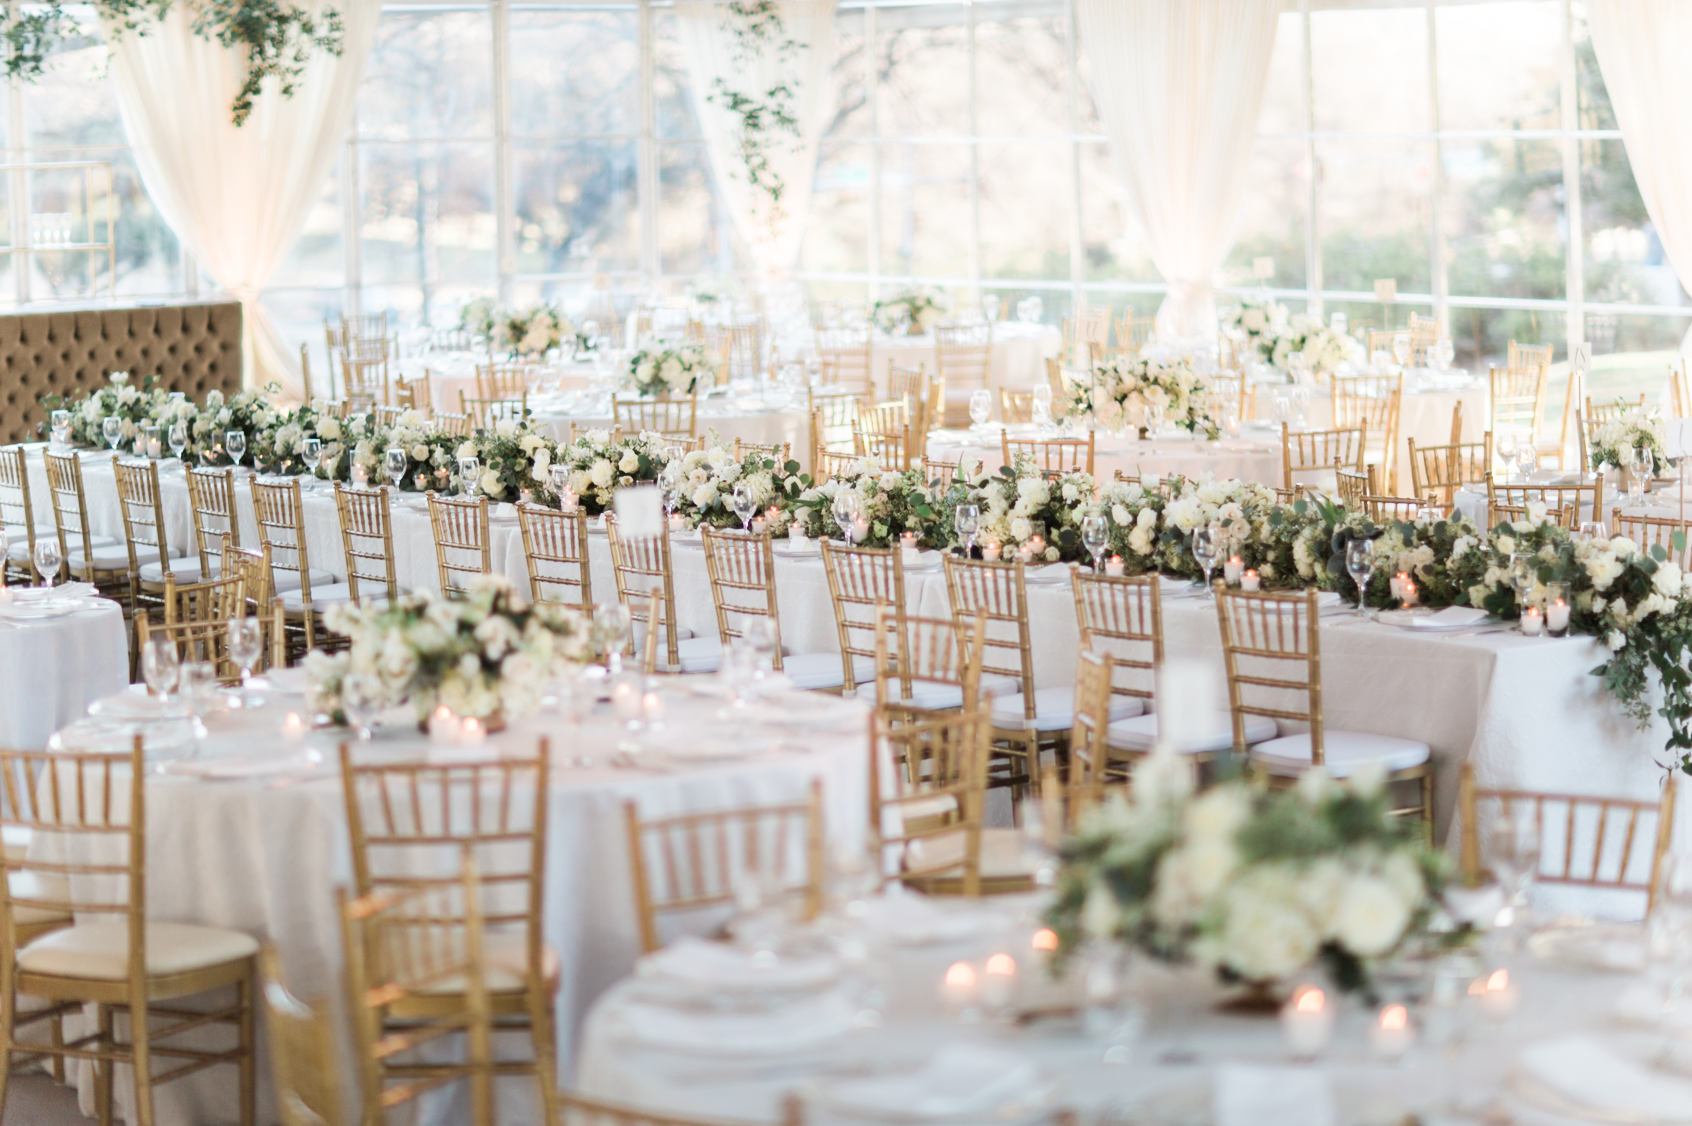 Classic Gold & White Tented Wedding - Stefanie Miles Events